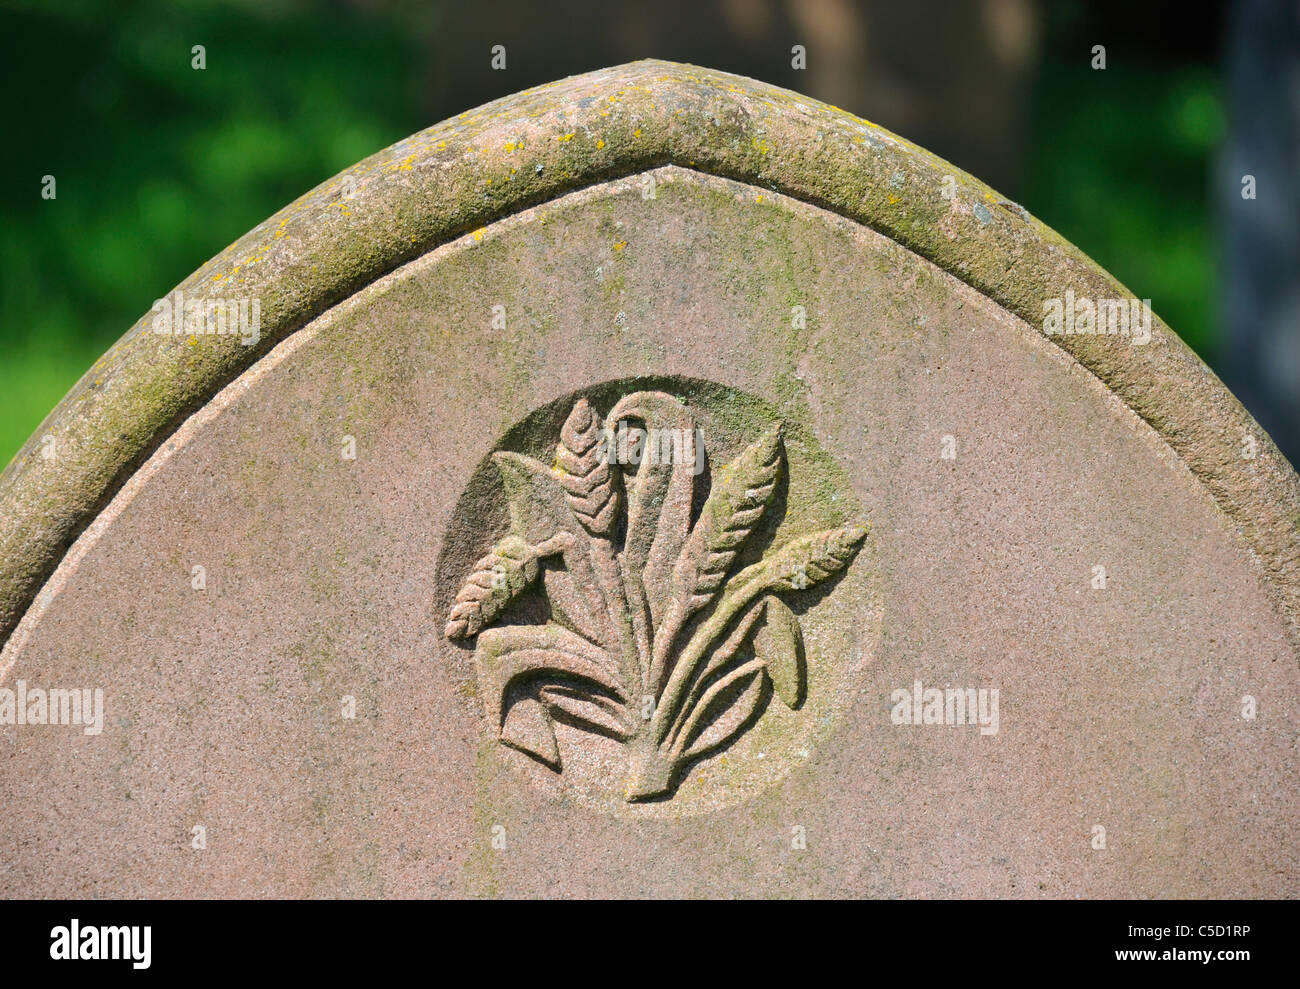 Ears of corn, detail of gravestone. Church of Saint James, Temple Sowerby, Cumbria, England, United Kingdom, Europe. - Stock Image